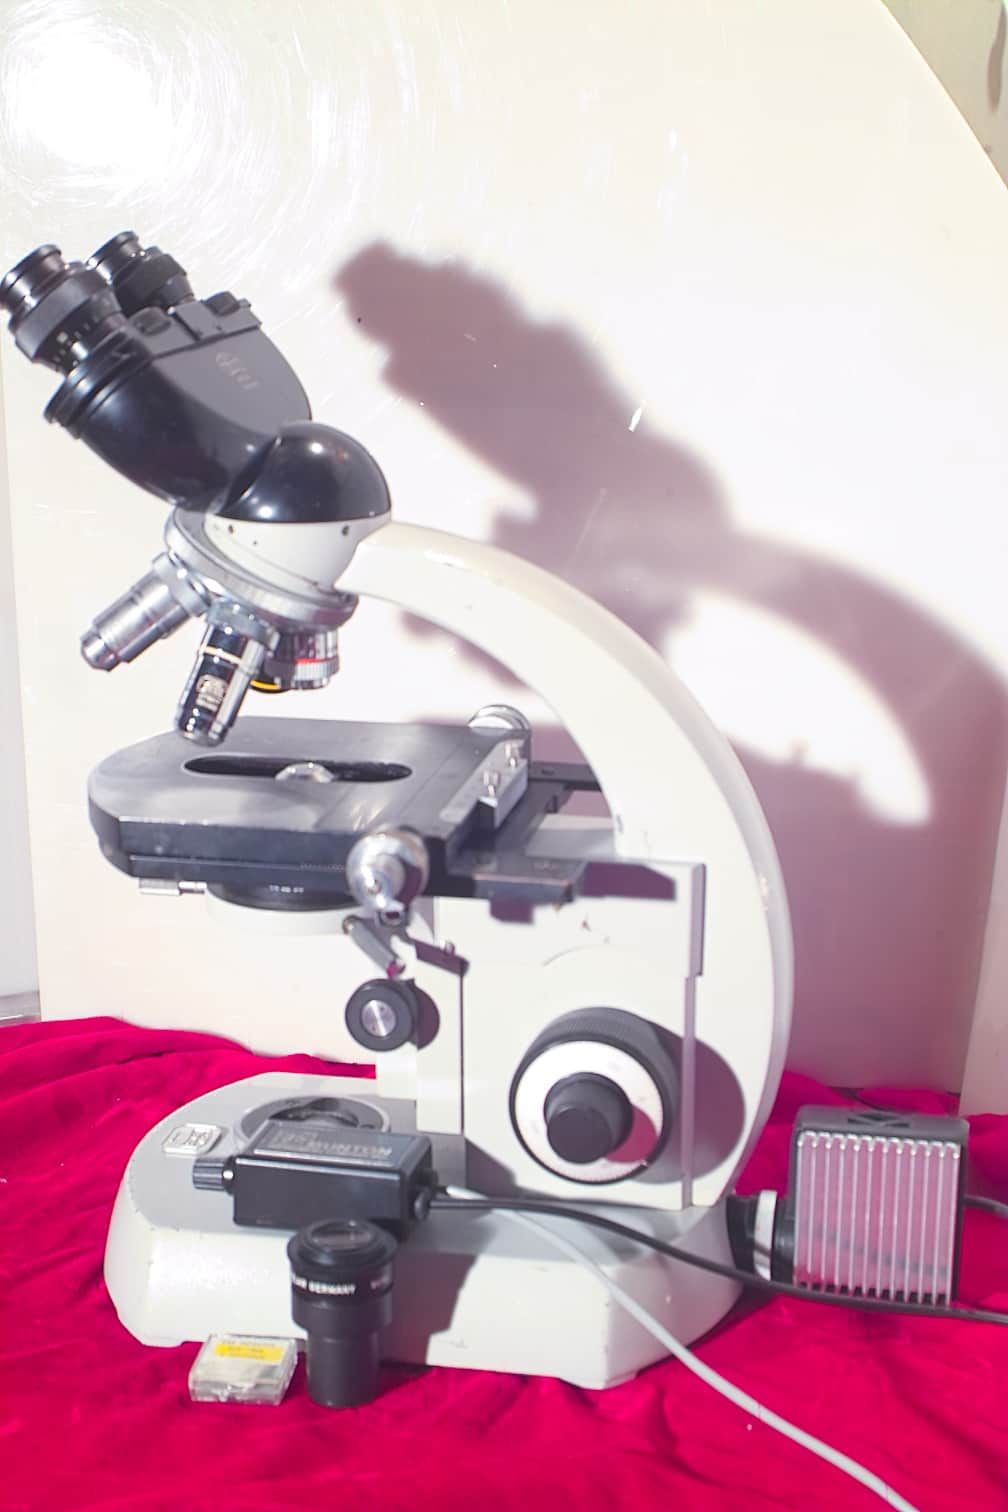 ZEISS ASBESTOS ANALYSIS MICROSCOPE - STANDARD MODEL WITH NEW LED LIGHTING